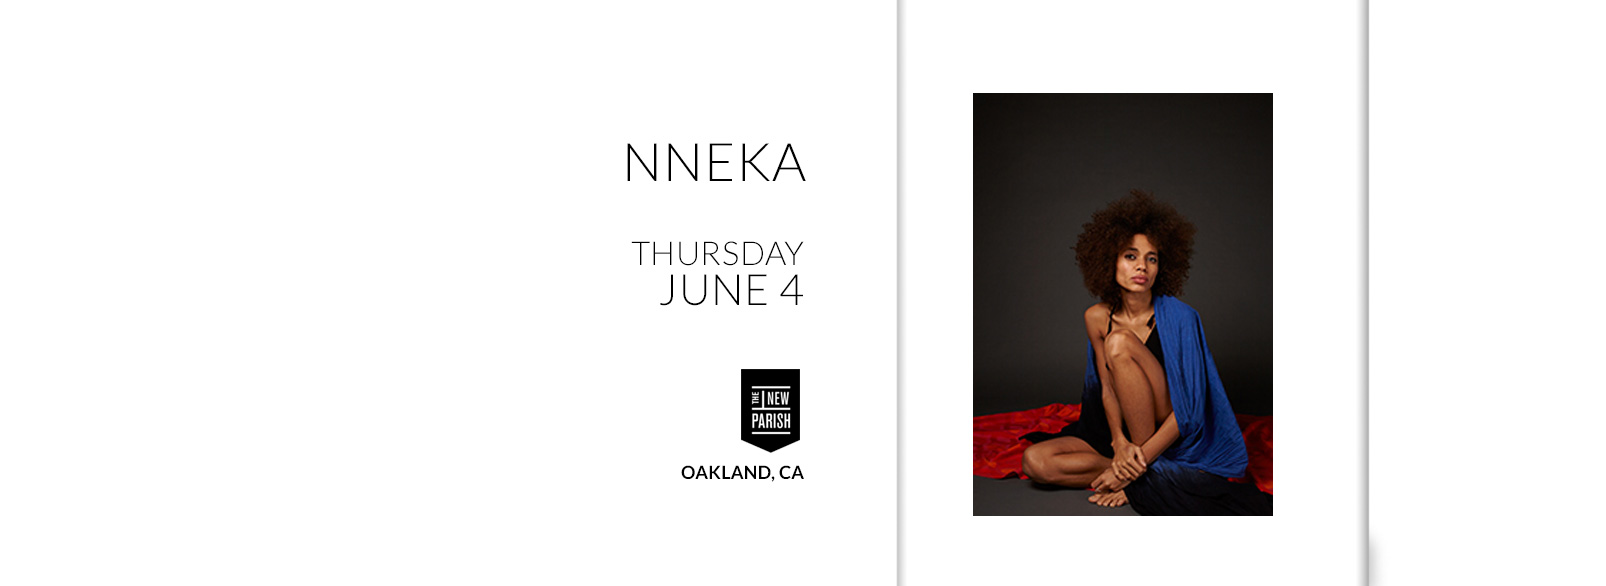 Nneka @ New Parish